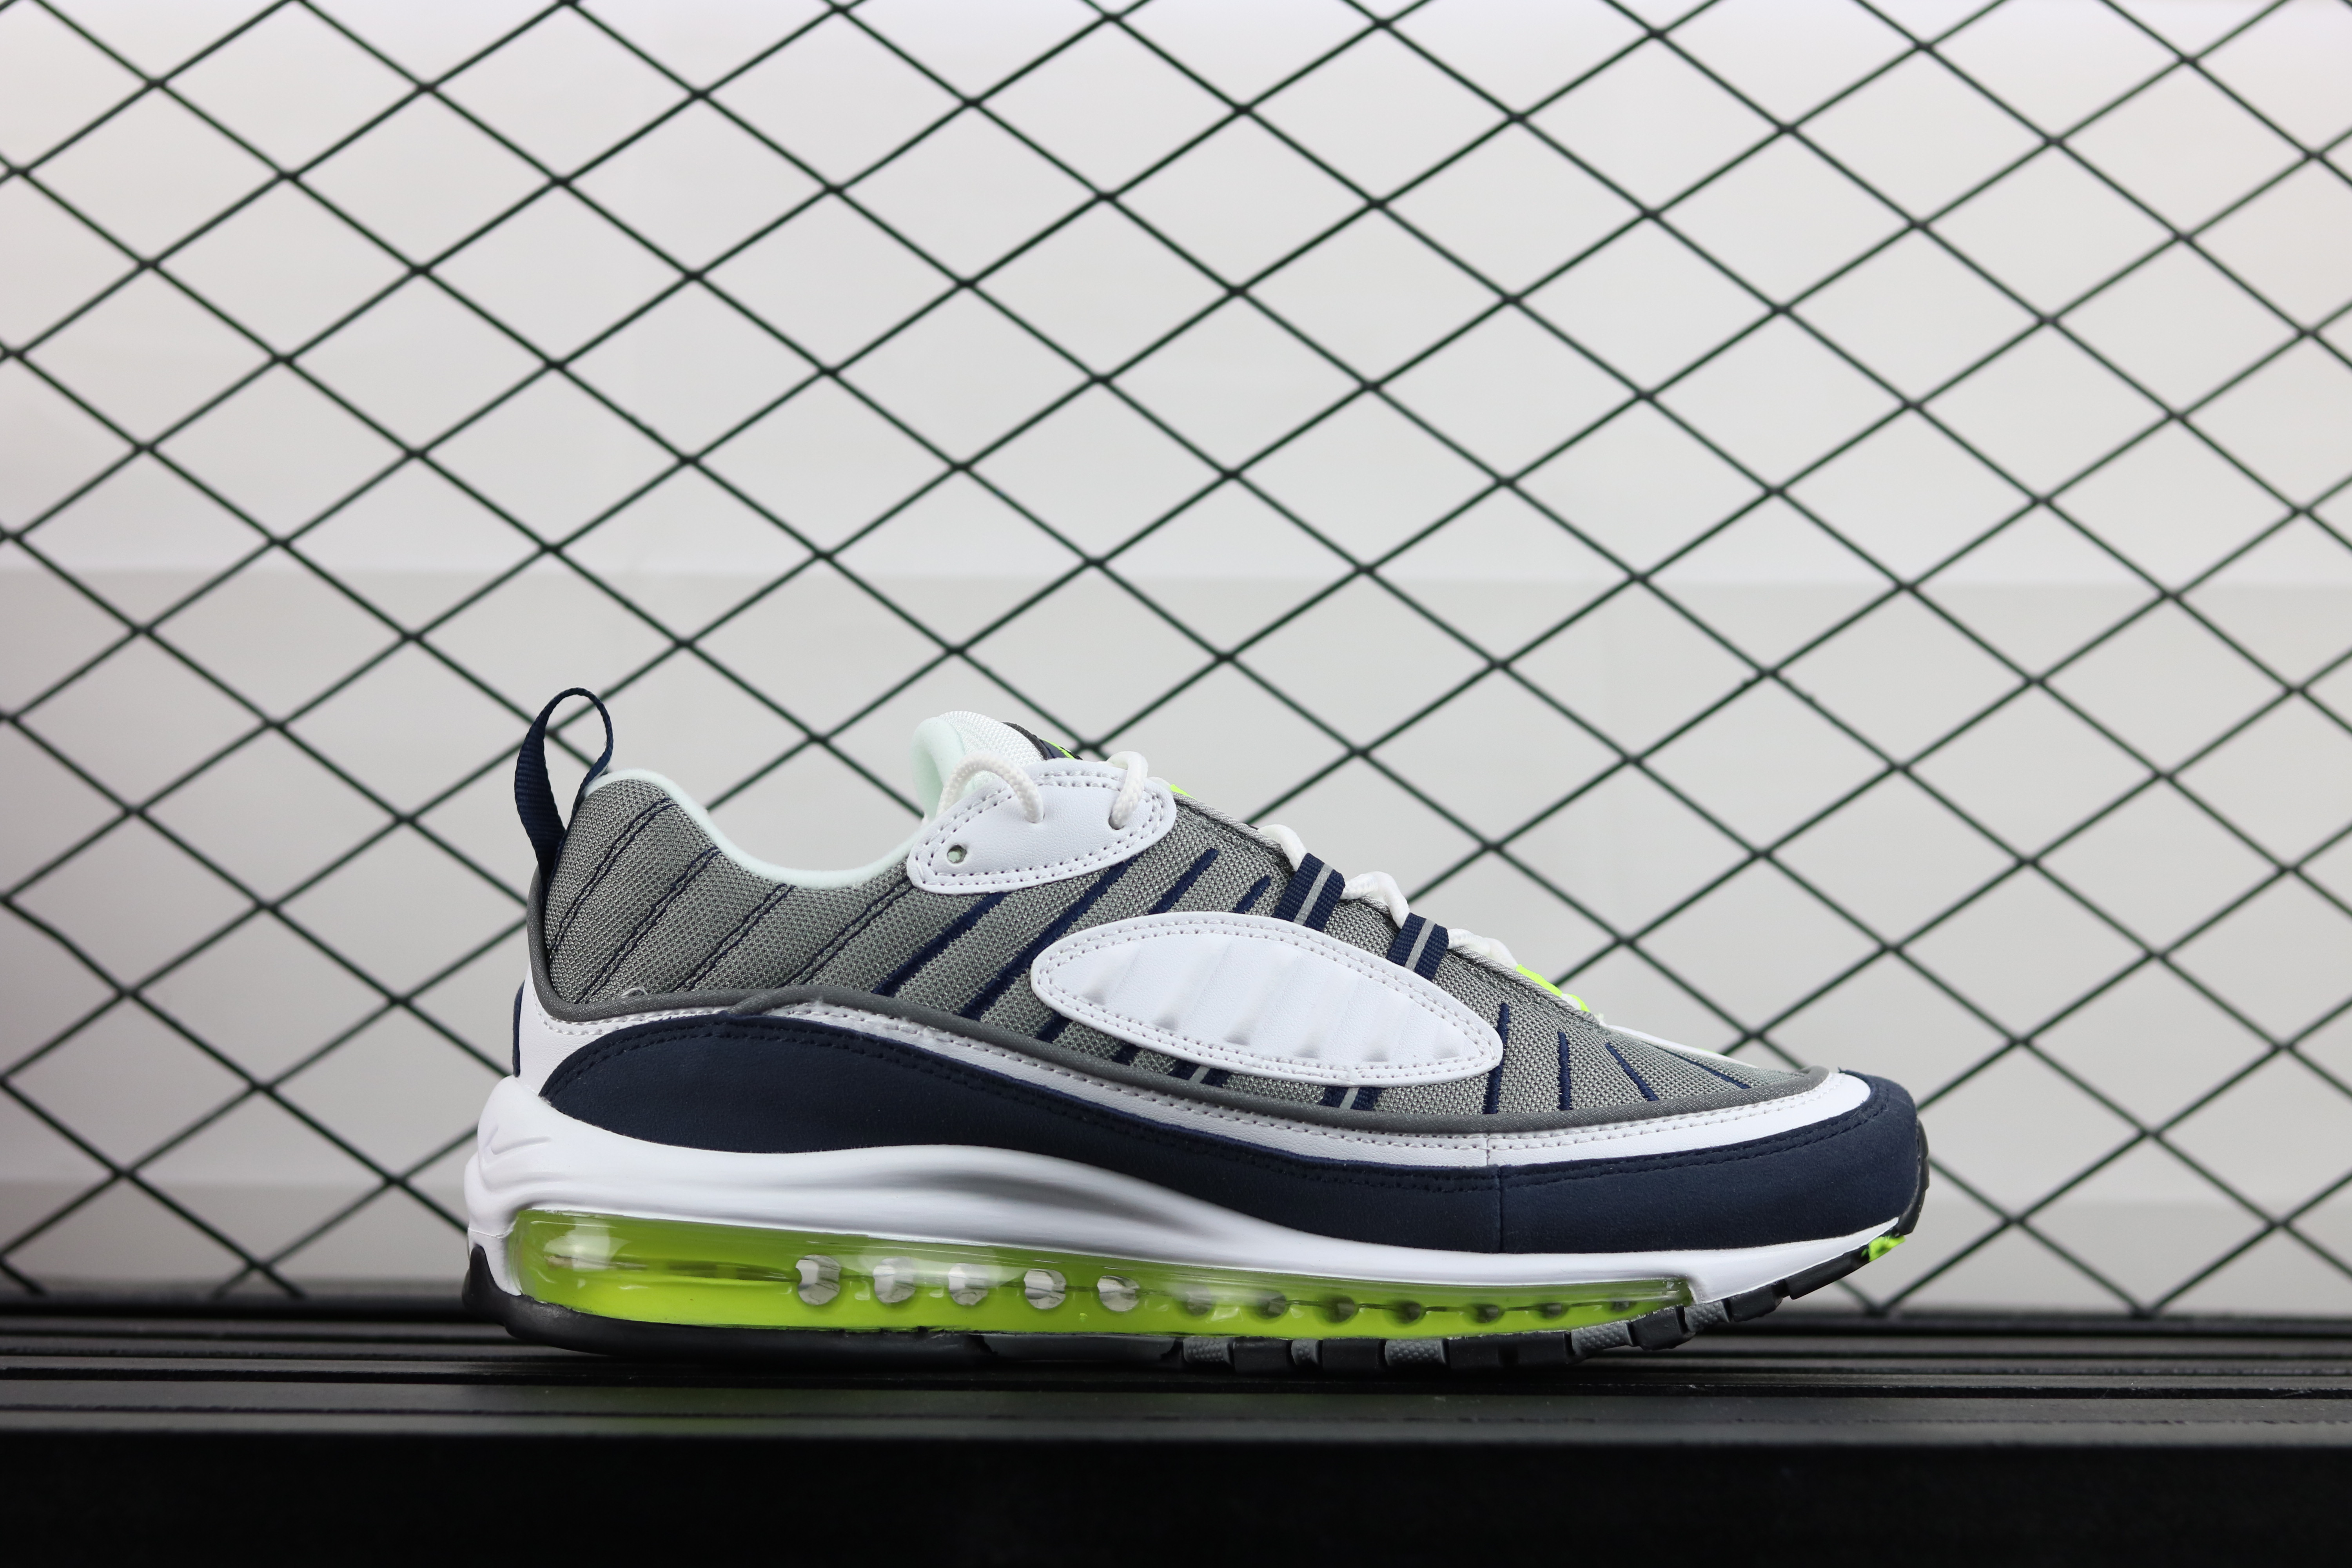 Nike Air Max 98 Tour Yellow Shoes